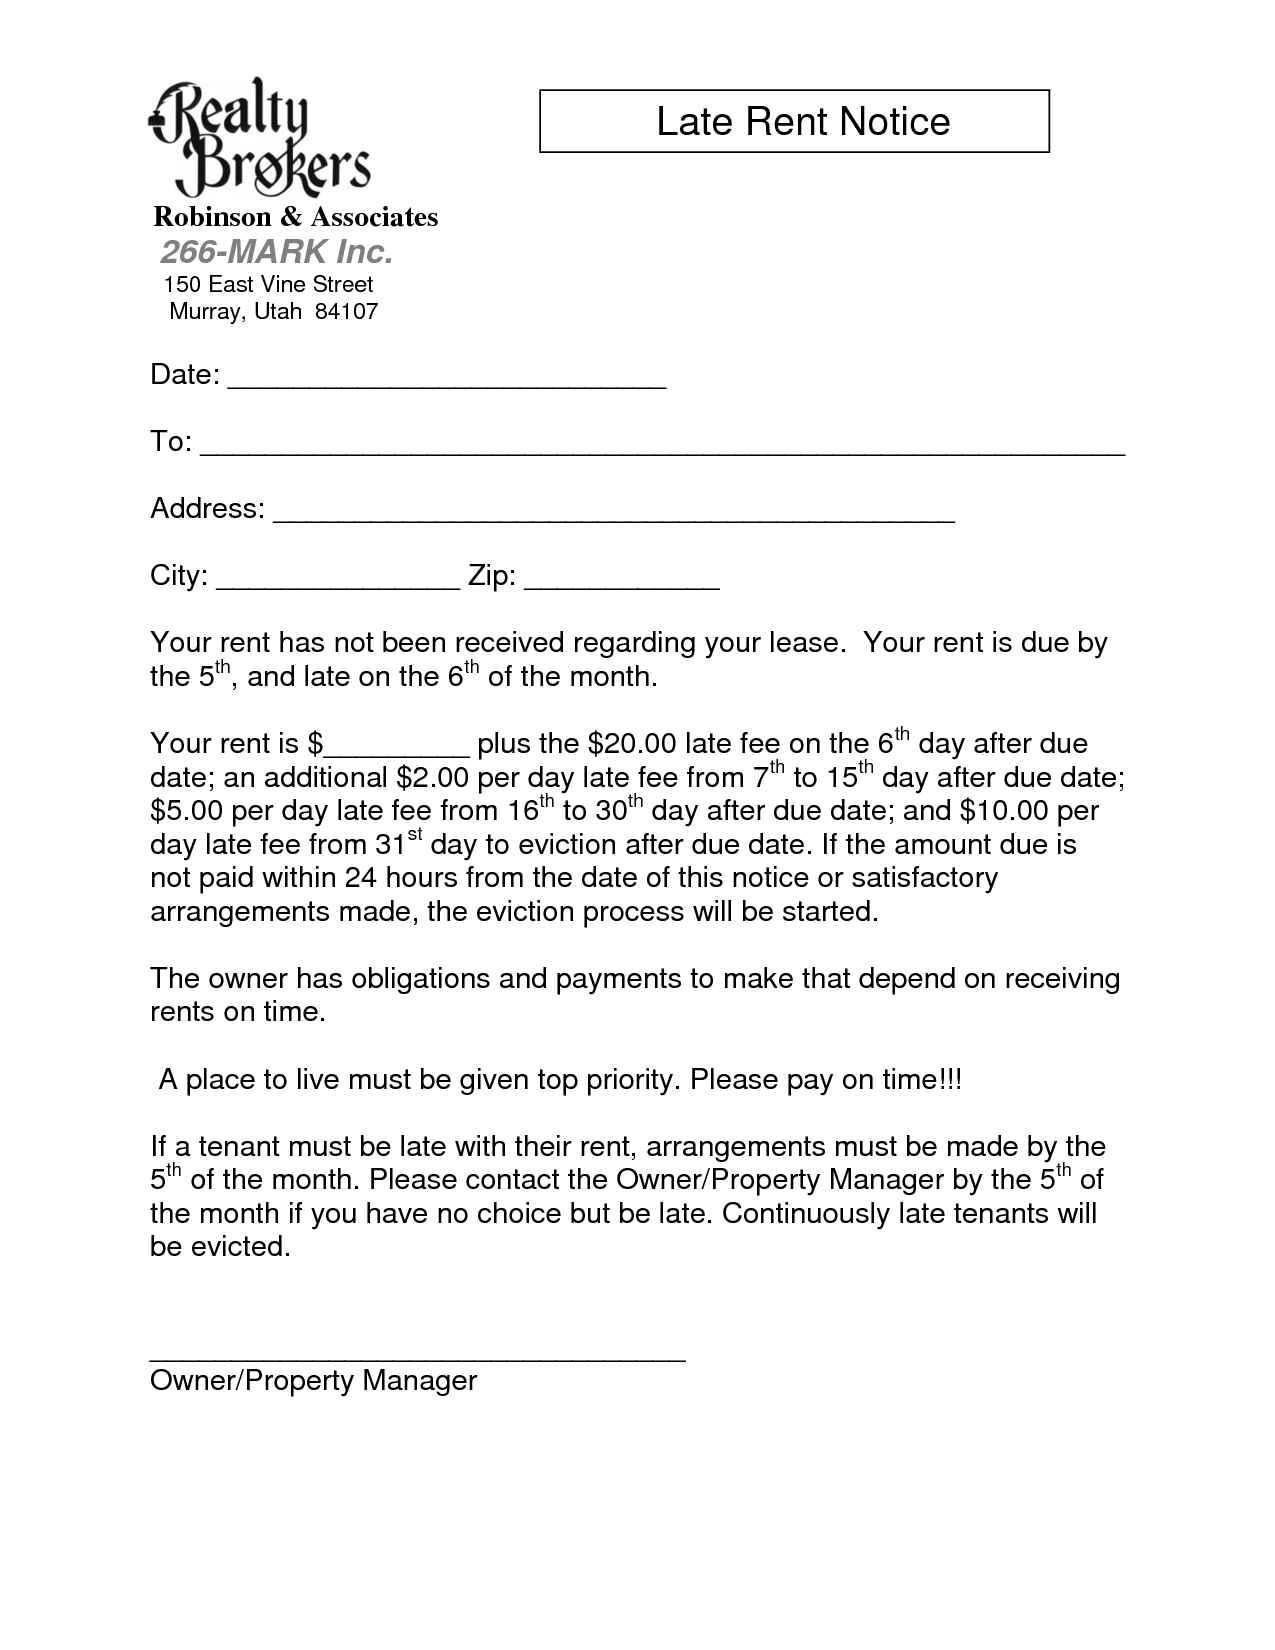 Late Rent Notice Template images sample late rent notice – Late Rent Notice Template